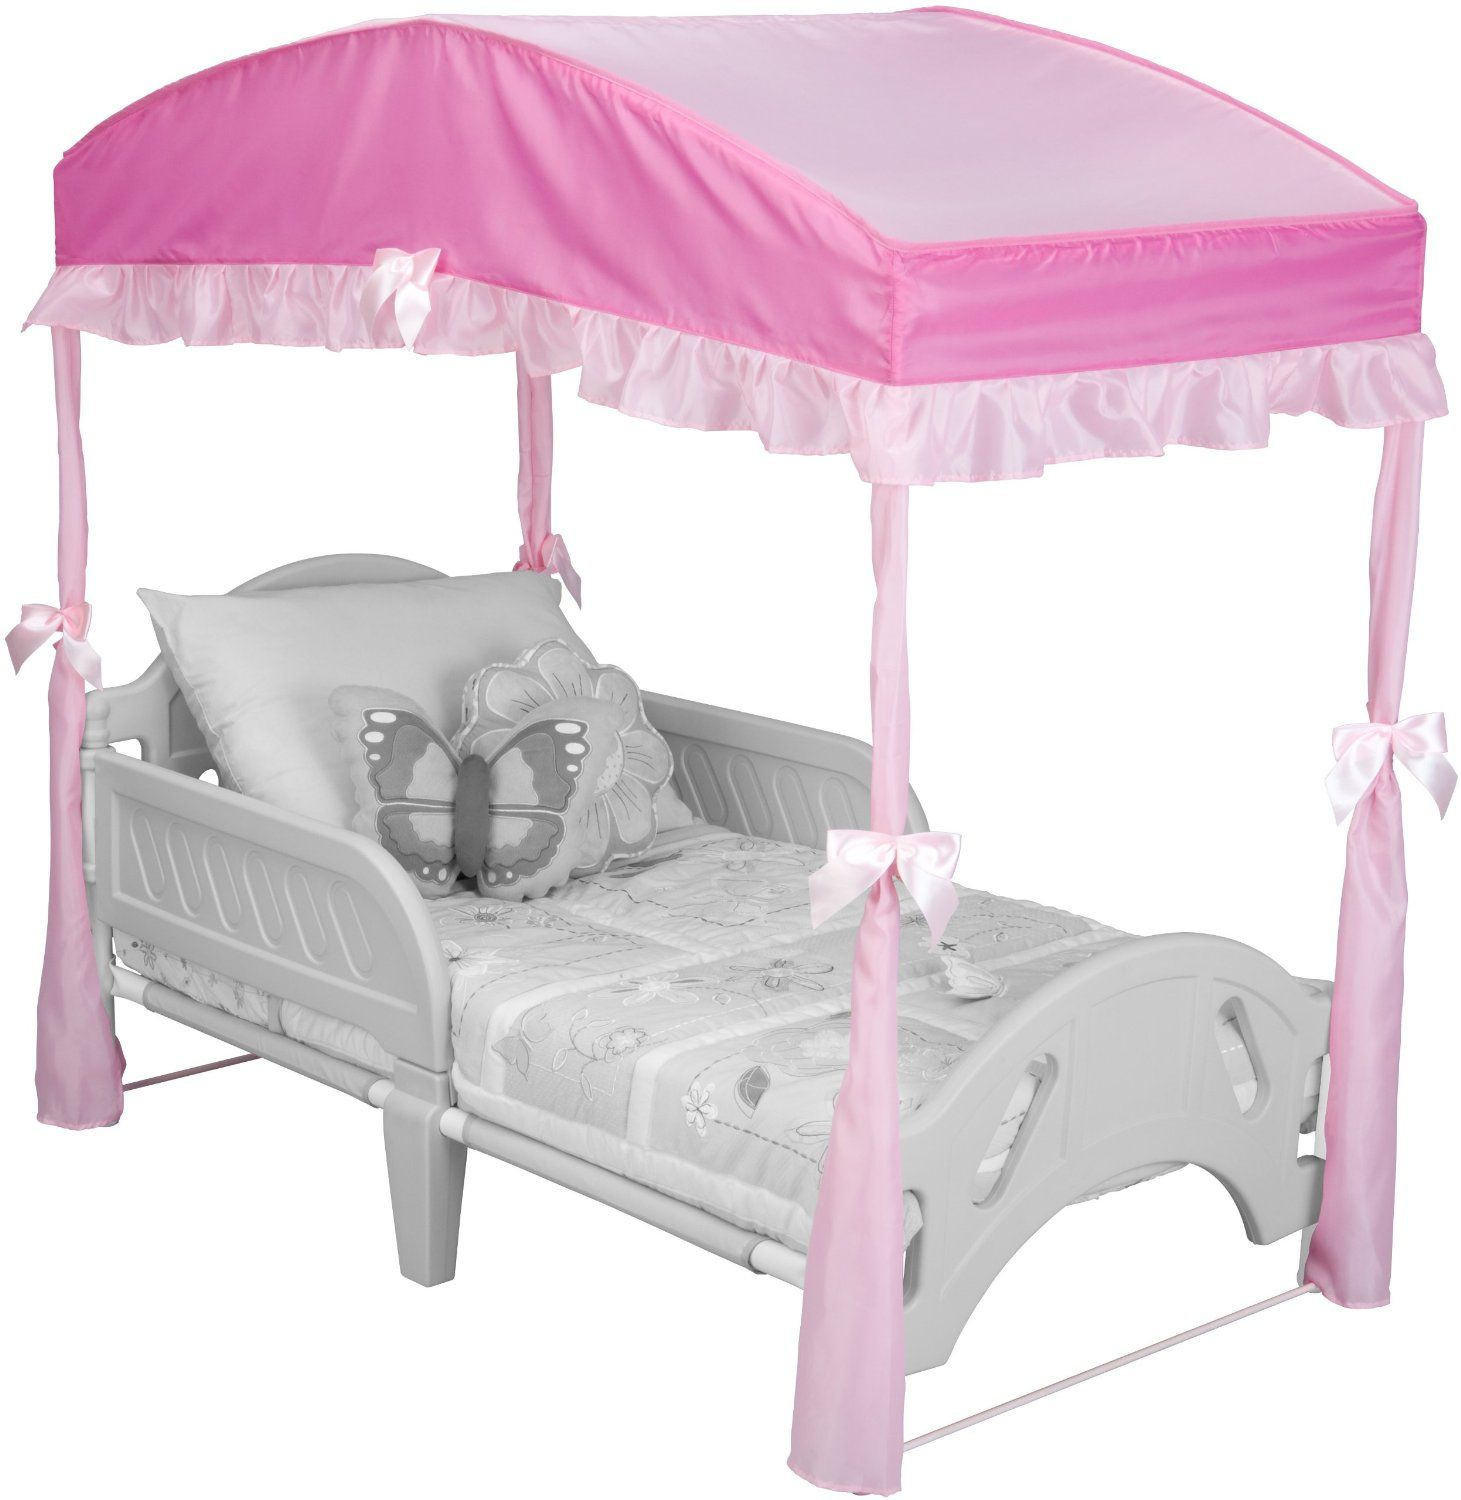 This Delta Children Canopy Toddler Bed Disney Princess Product Is